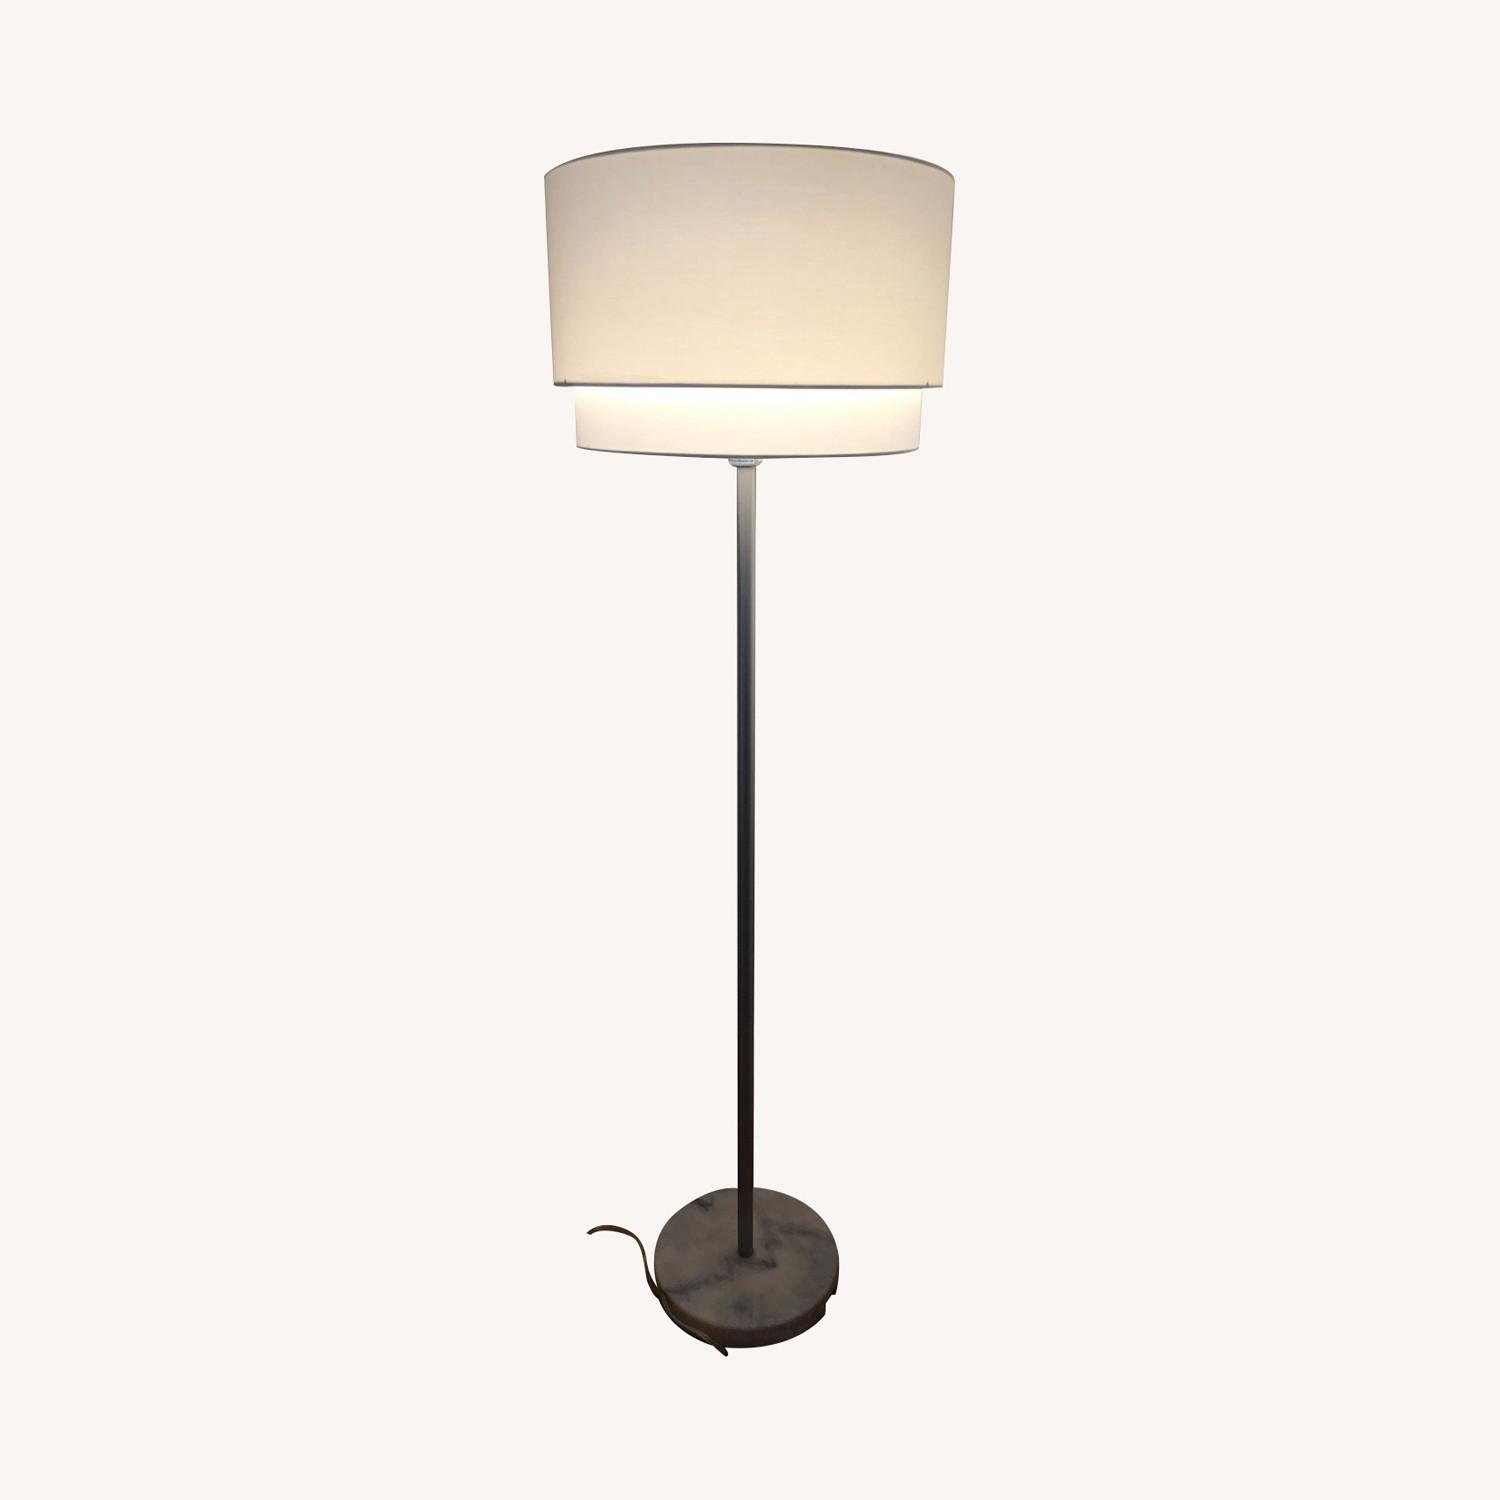 Crate & Barrel Meryl Vertical Floor Lamp - image-0